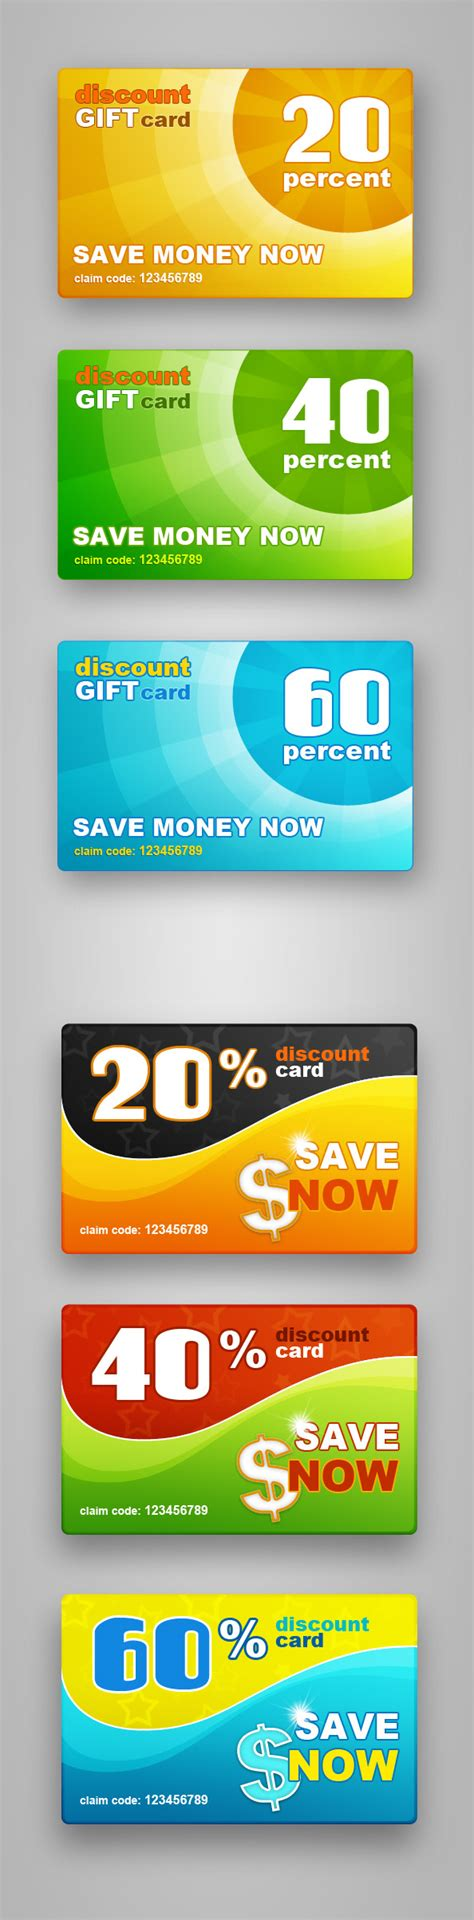 Cheaper Gift Cards - free psd discount gift cards free psd files